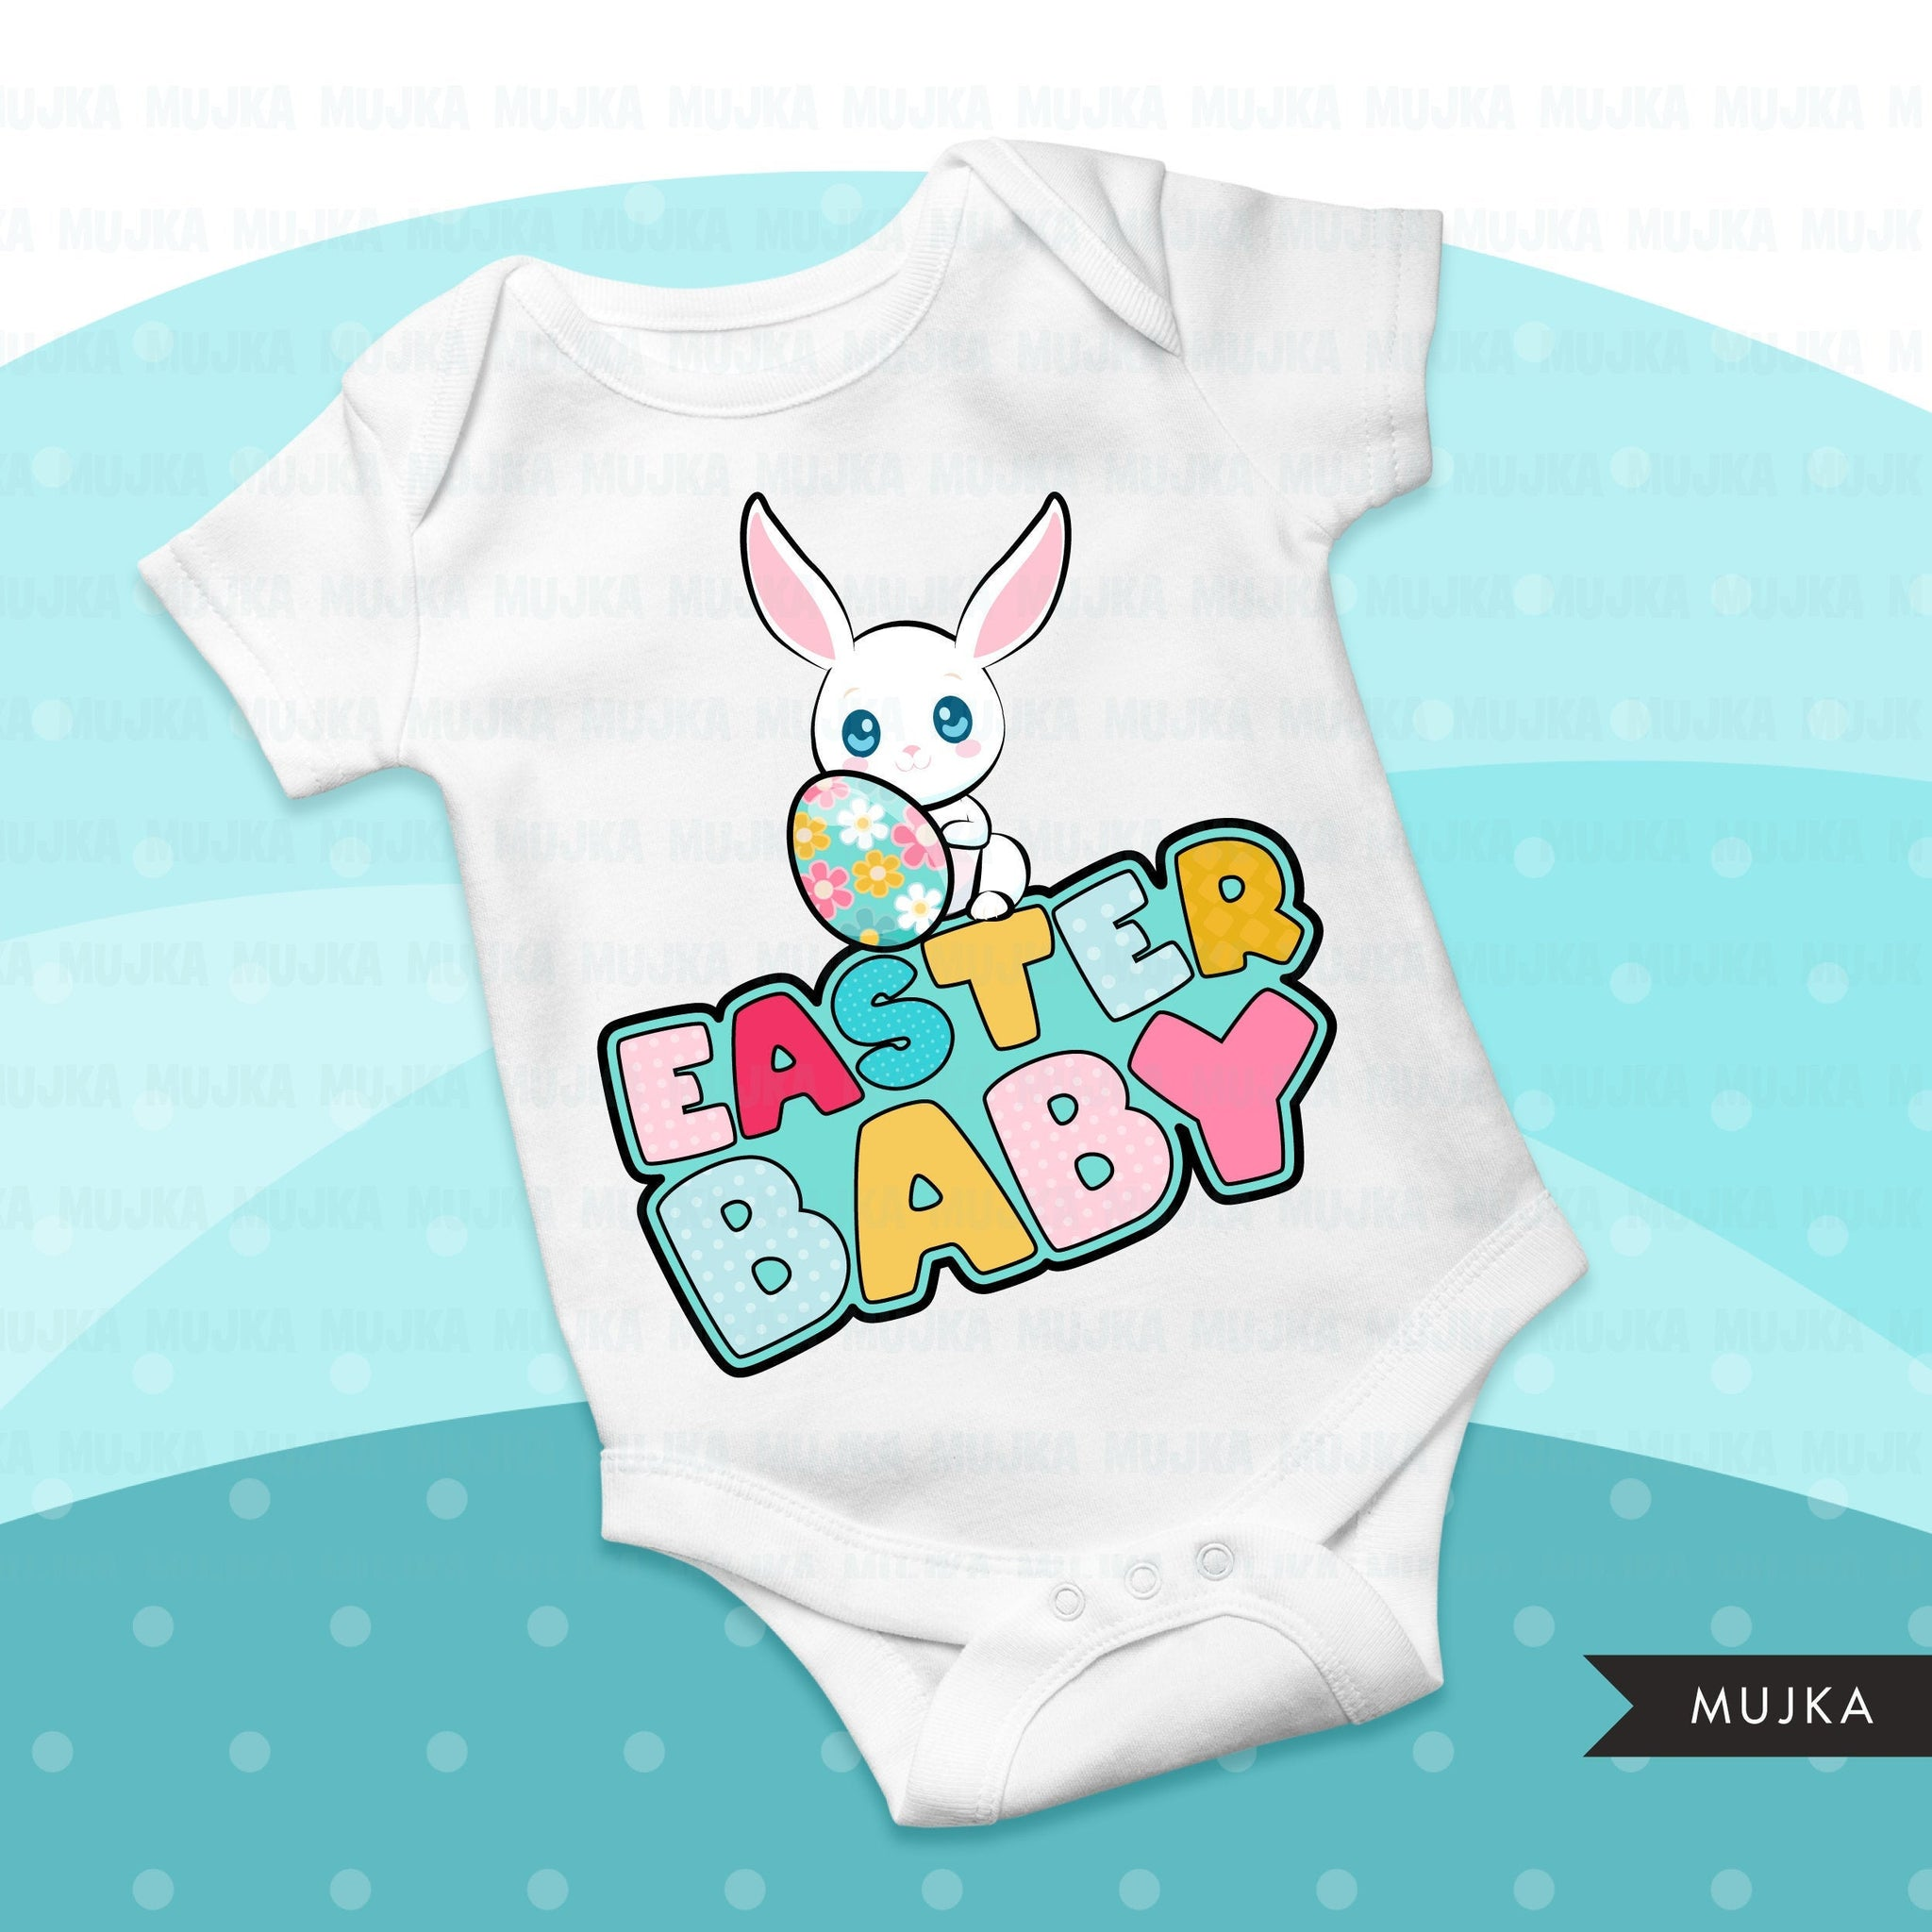 Easter sublimation designs, Easter egg, Easter baby, Easter bunny shirt design, polka dot, first birthday, digital download files for cricut